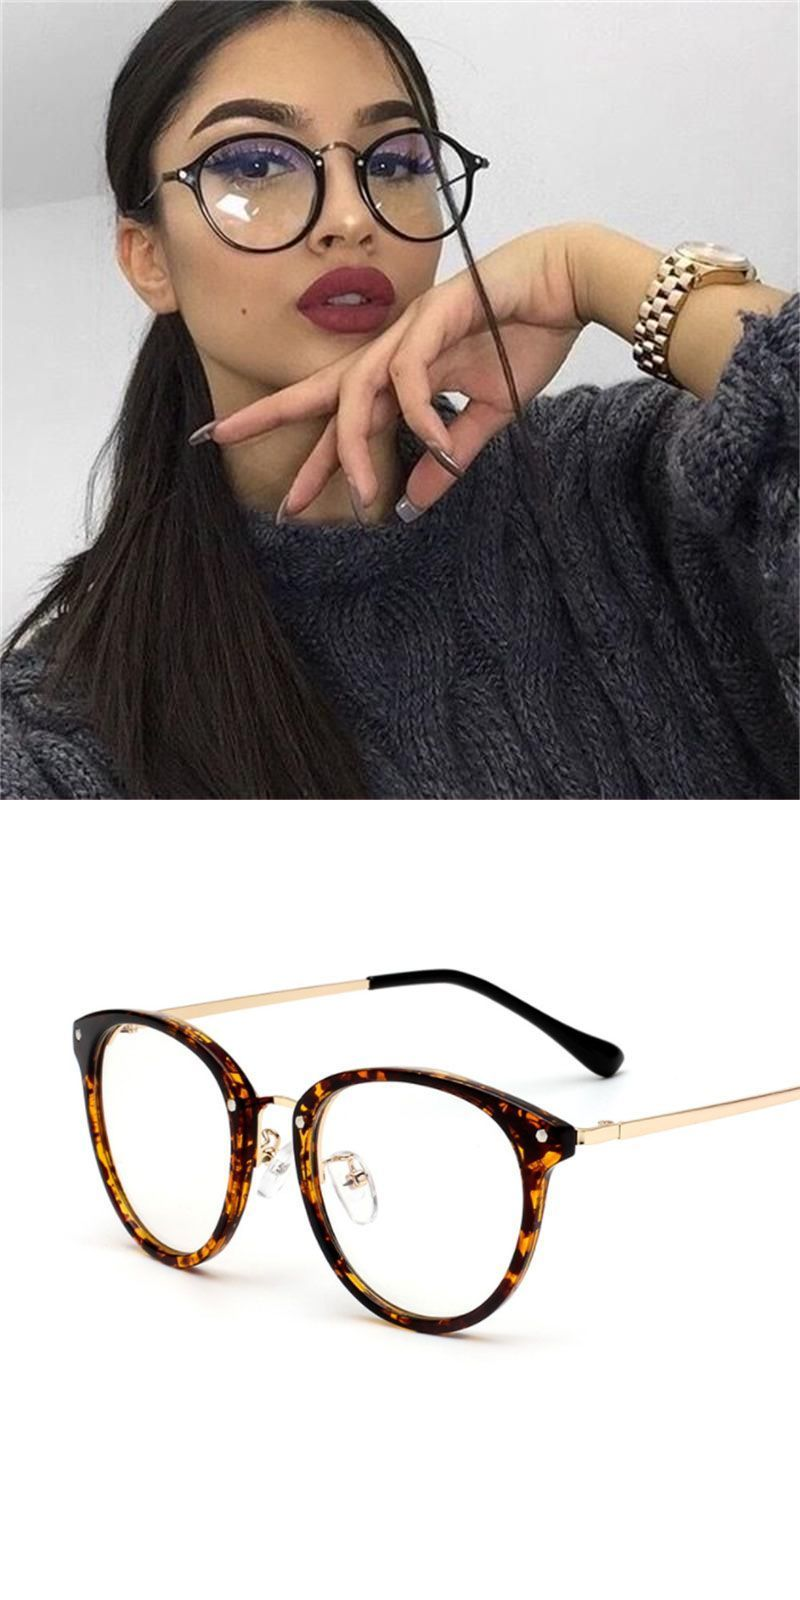 Retro round glasses women transparent clear lens glasses female 2018 vintage  optical blue light rivet speactacles c7d4e1b912